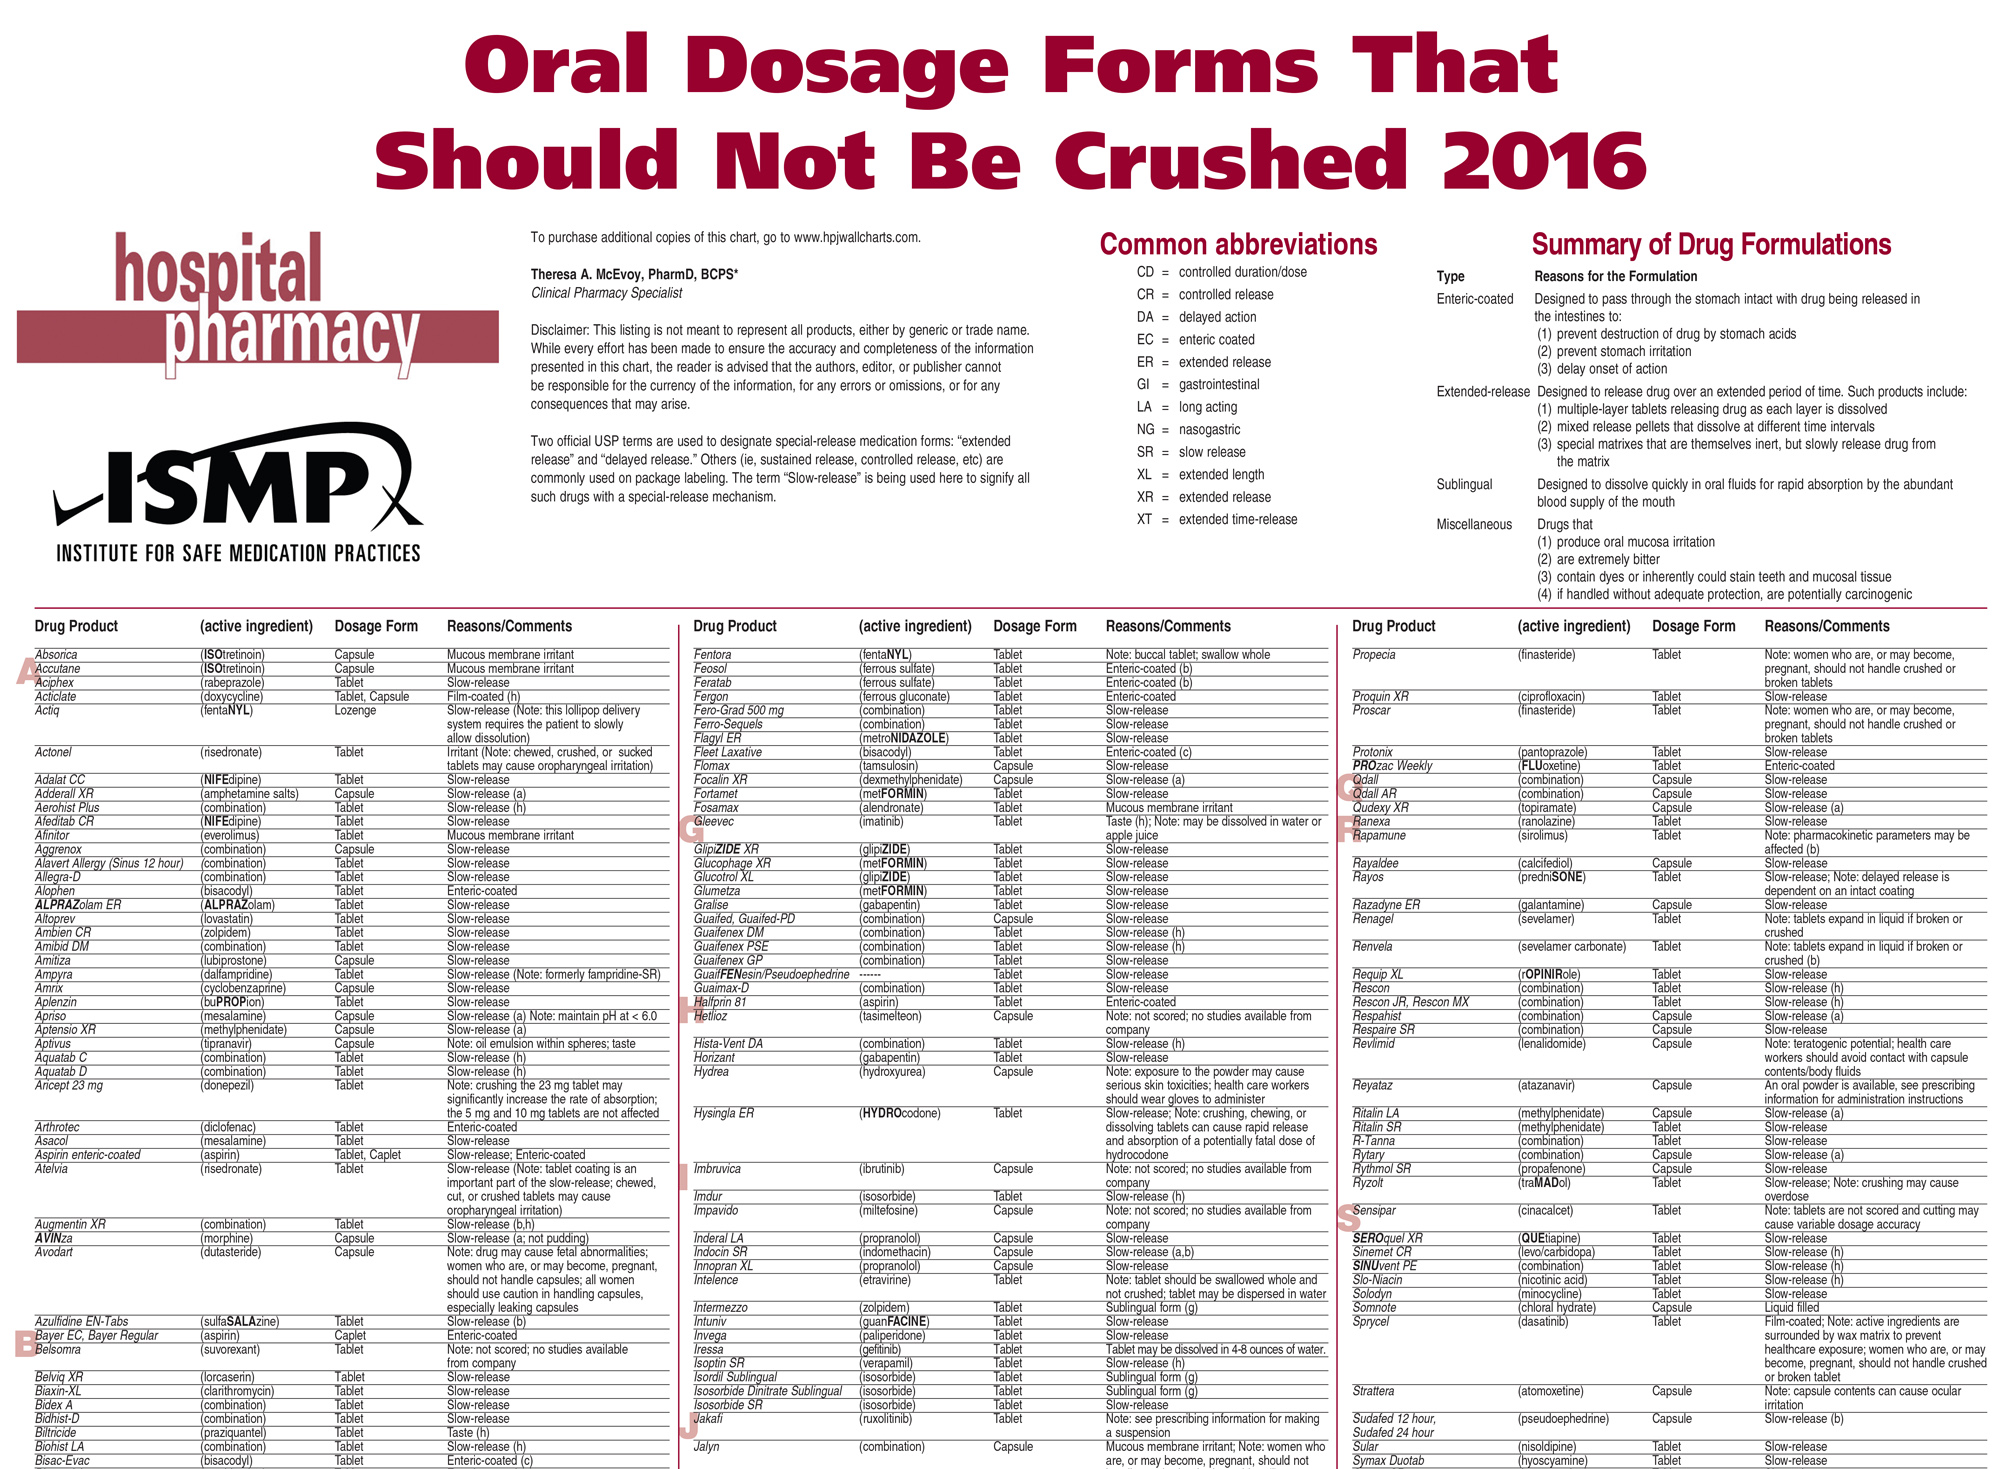 Oral Dosage Forms That Should Not Be Crushed (2015)